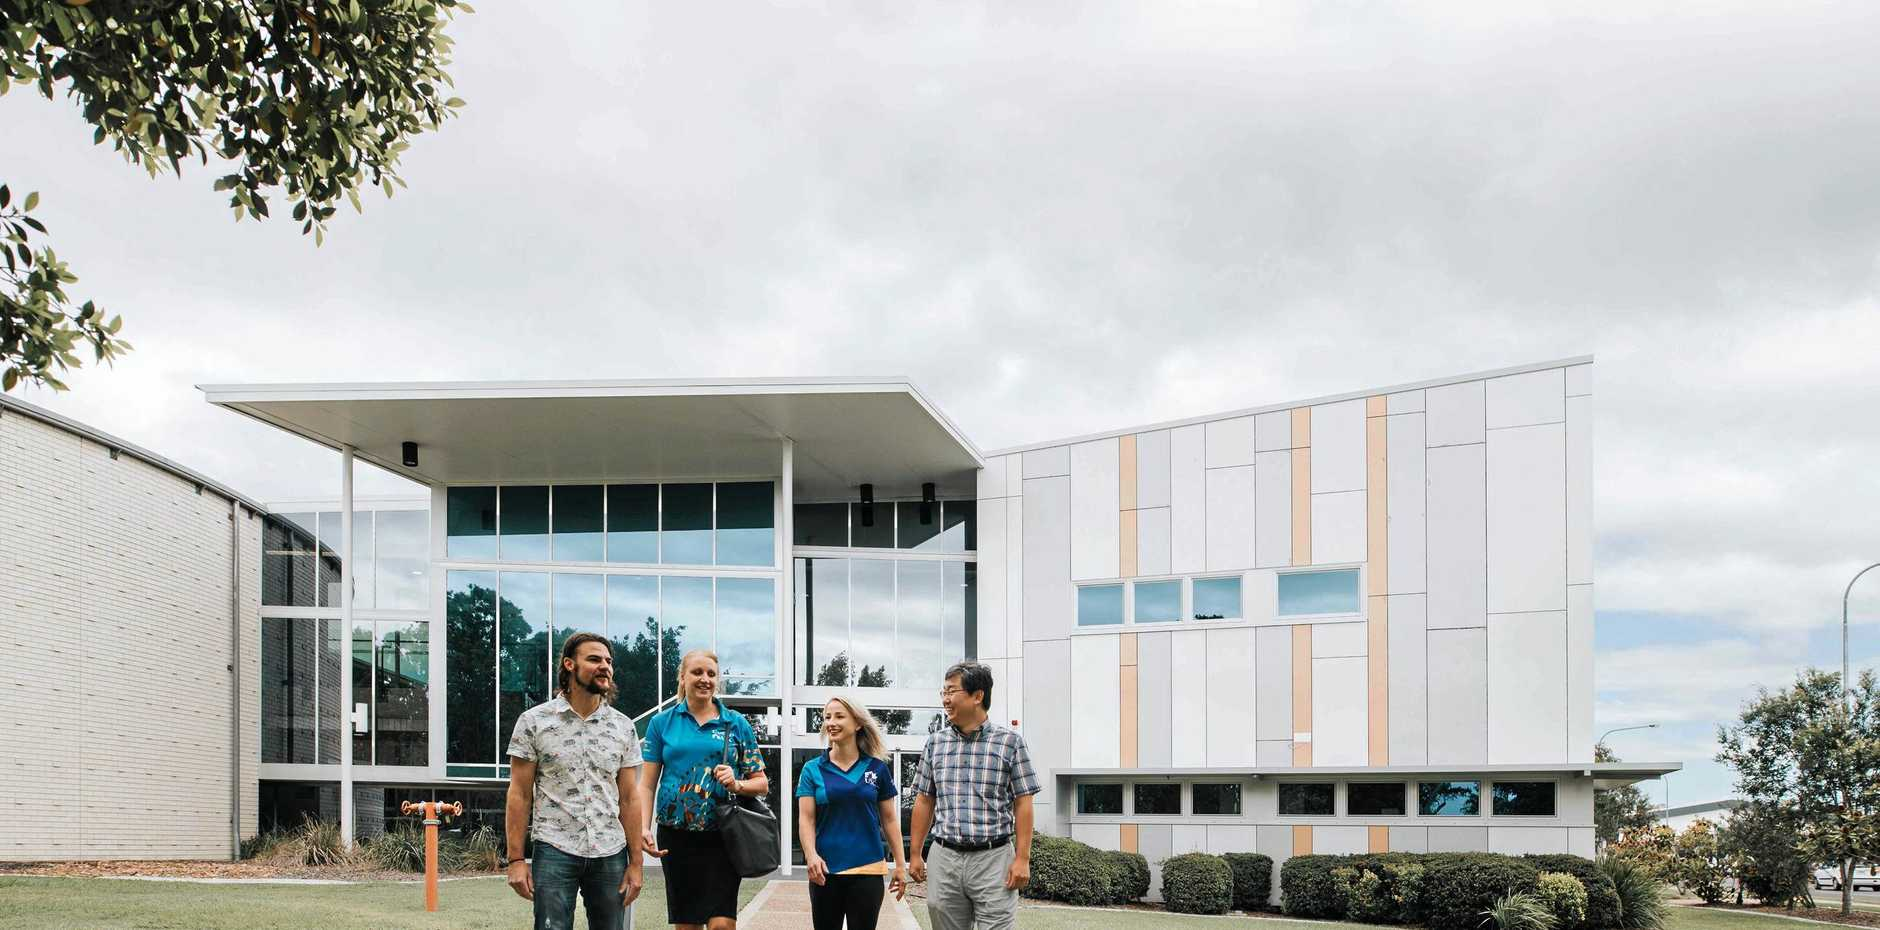 ON THE MOVE: Michael Zimmermann, Tanya Jackson, Amy Stephenson and Ghiuwon Kim at USC's Fraser Coast campus.